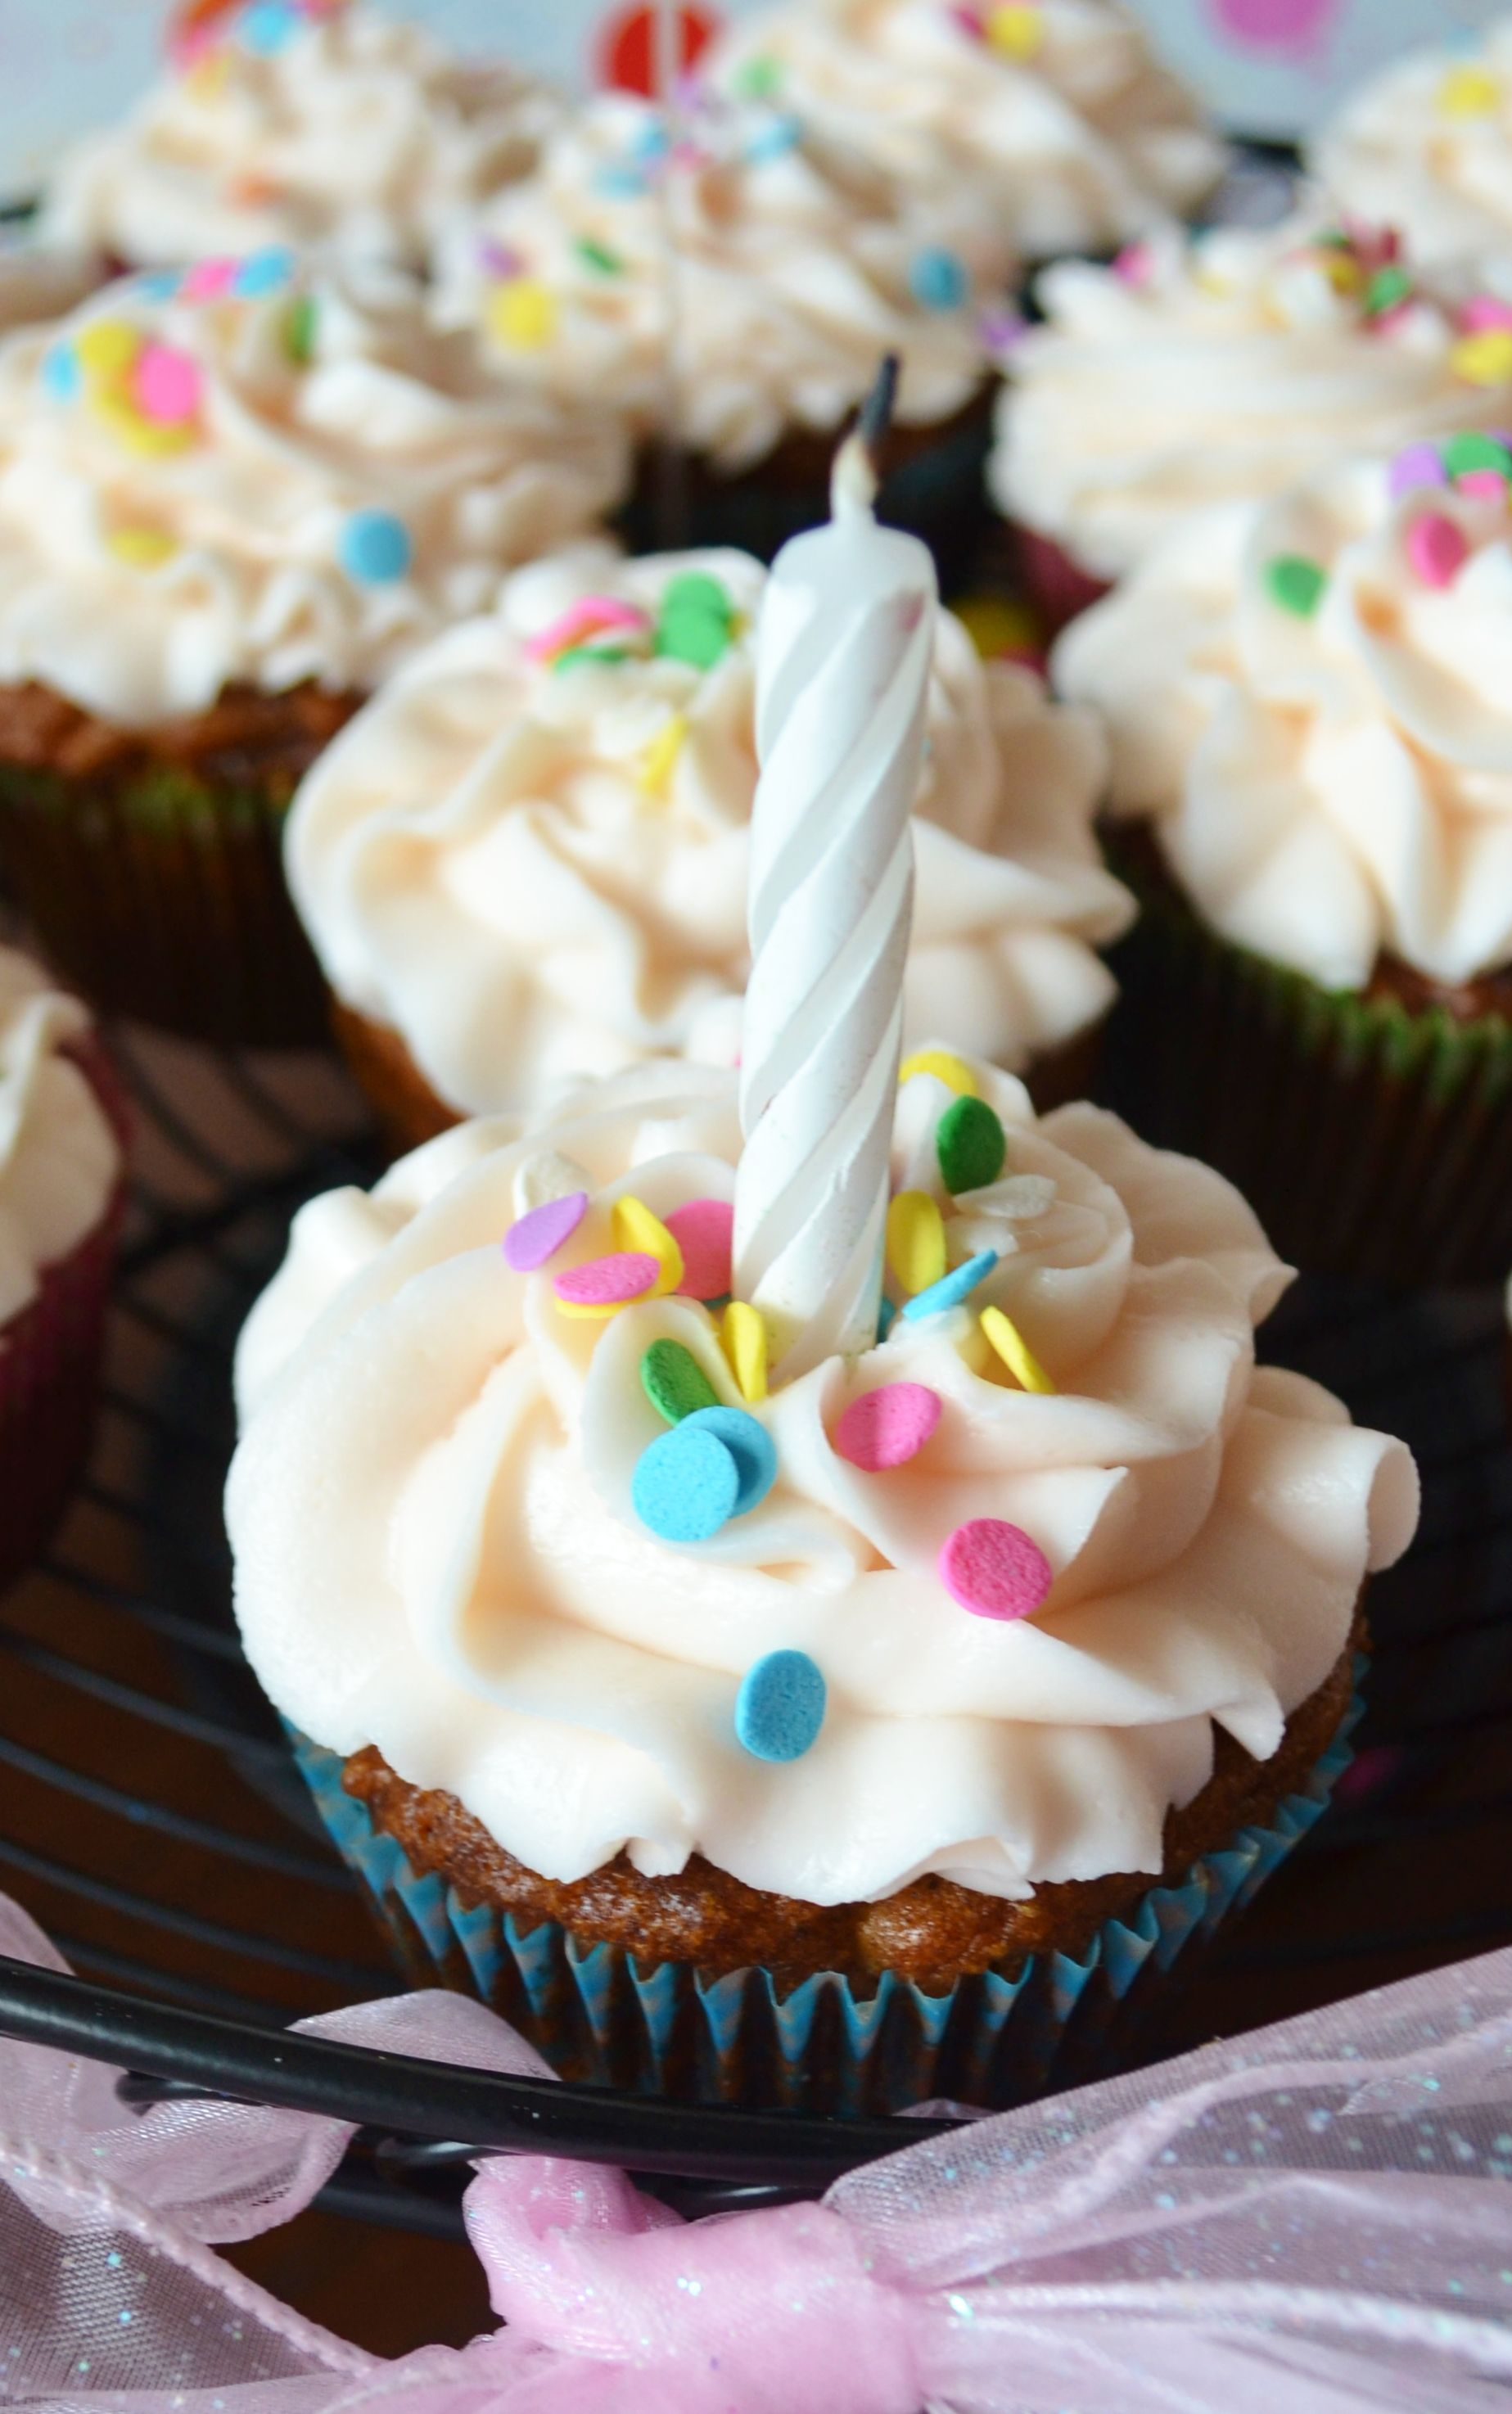 Baby Friendly Cupcakes Low Sugar Great For Cs First Birthday